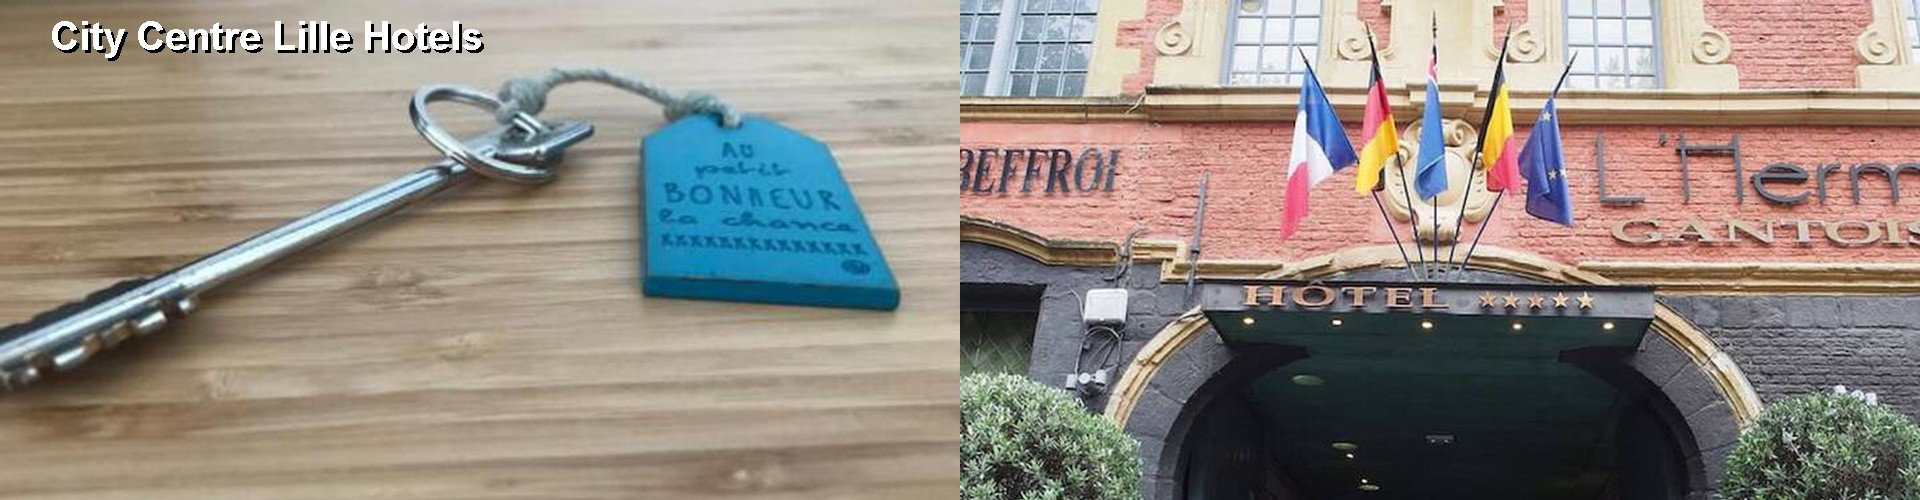 5 Best Hotels near City Centre Lille